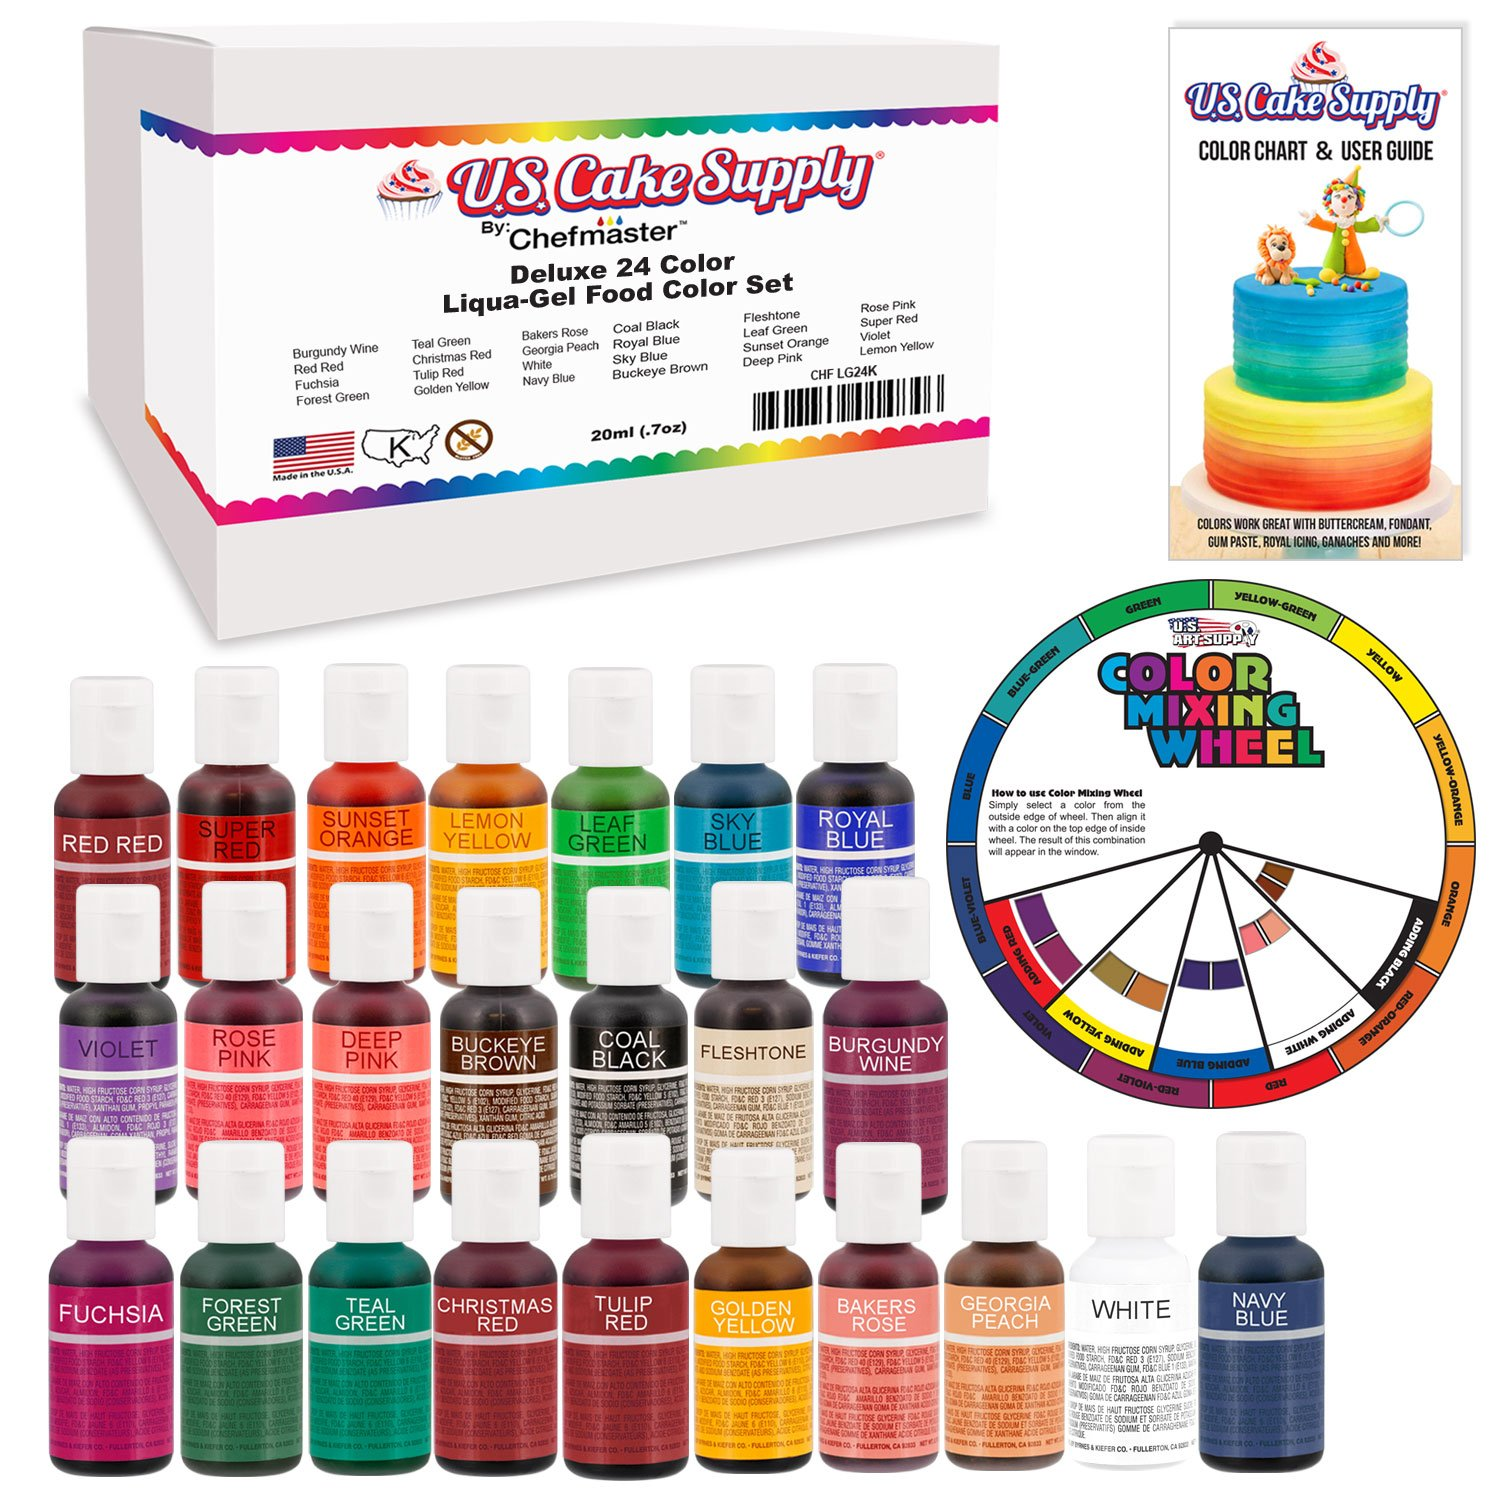 24 Color Cake Food Coloring Liqua-Gel Decorating Baking Primary & Secondary Colors Deluxe Set - U.S. Cake Supply 0.75 fl. oz. (20ml) Bottles